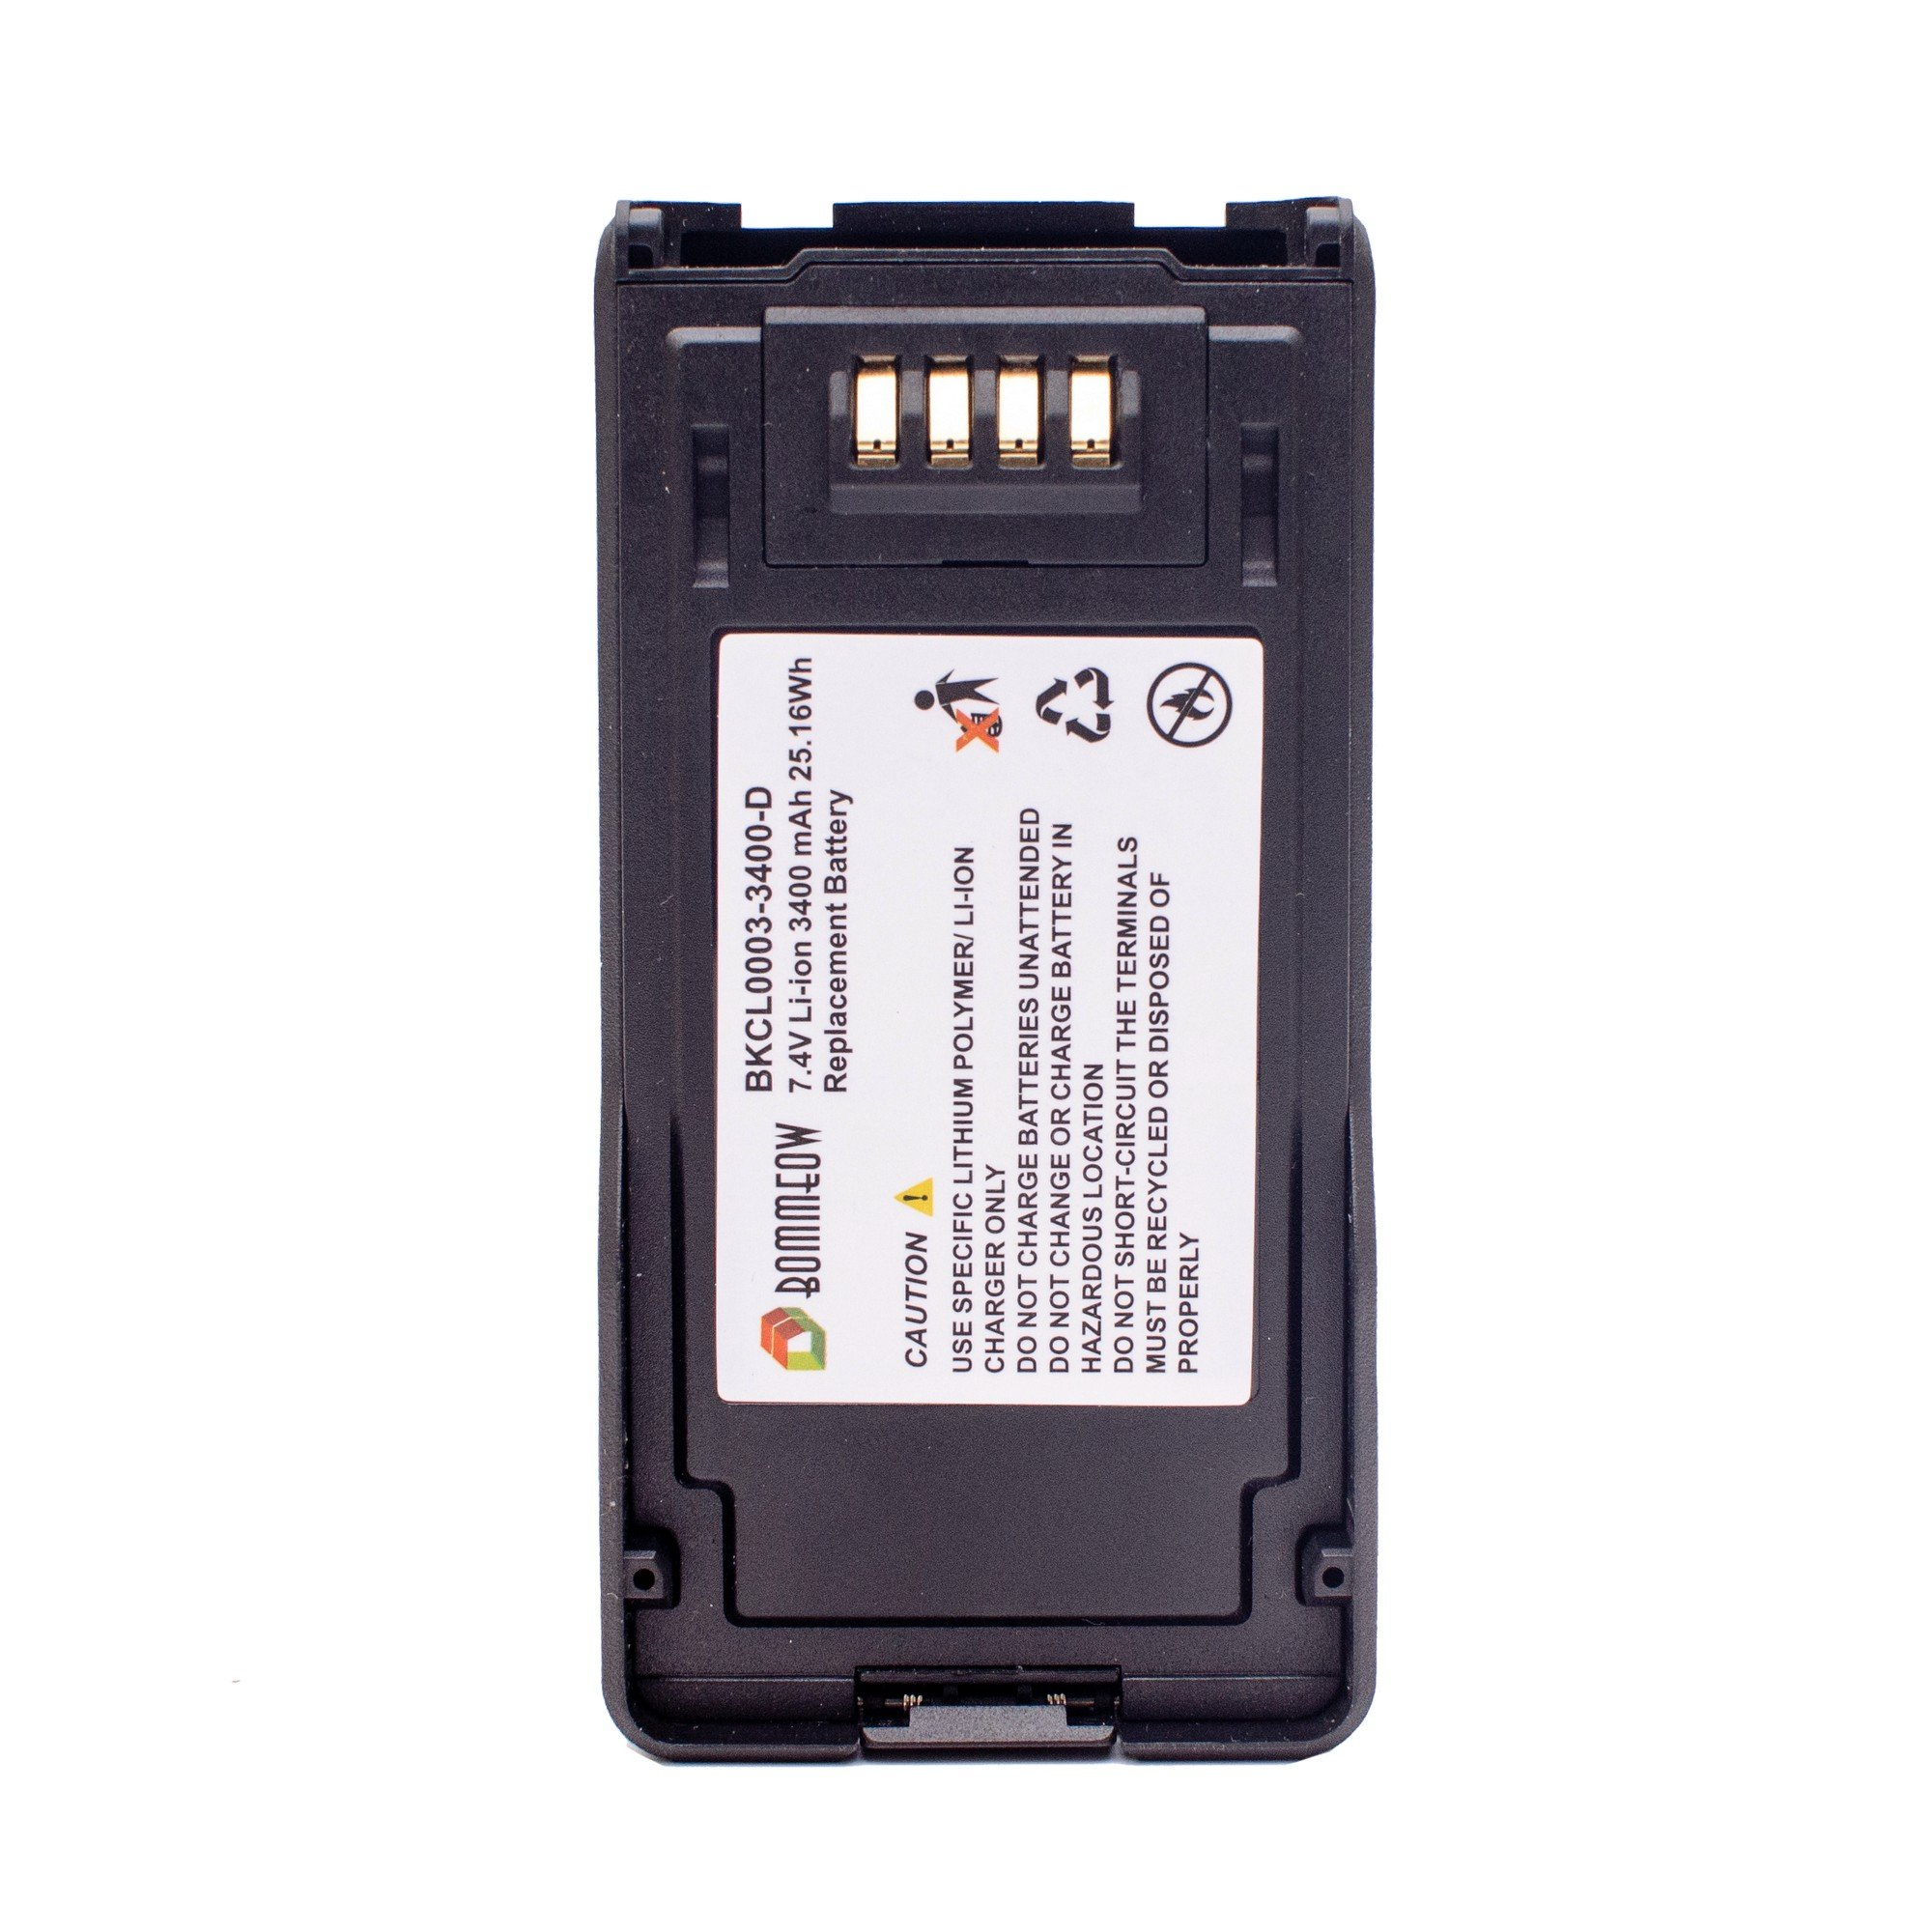 Bommeow BKCL0003-3400-D Replacement Battery for Kenwood JVCKenwood TK5230 TL5430 NX-5200 NX-5300 NX-5400